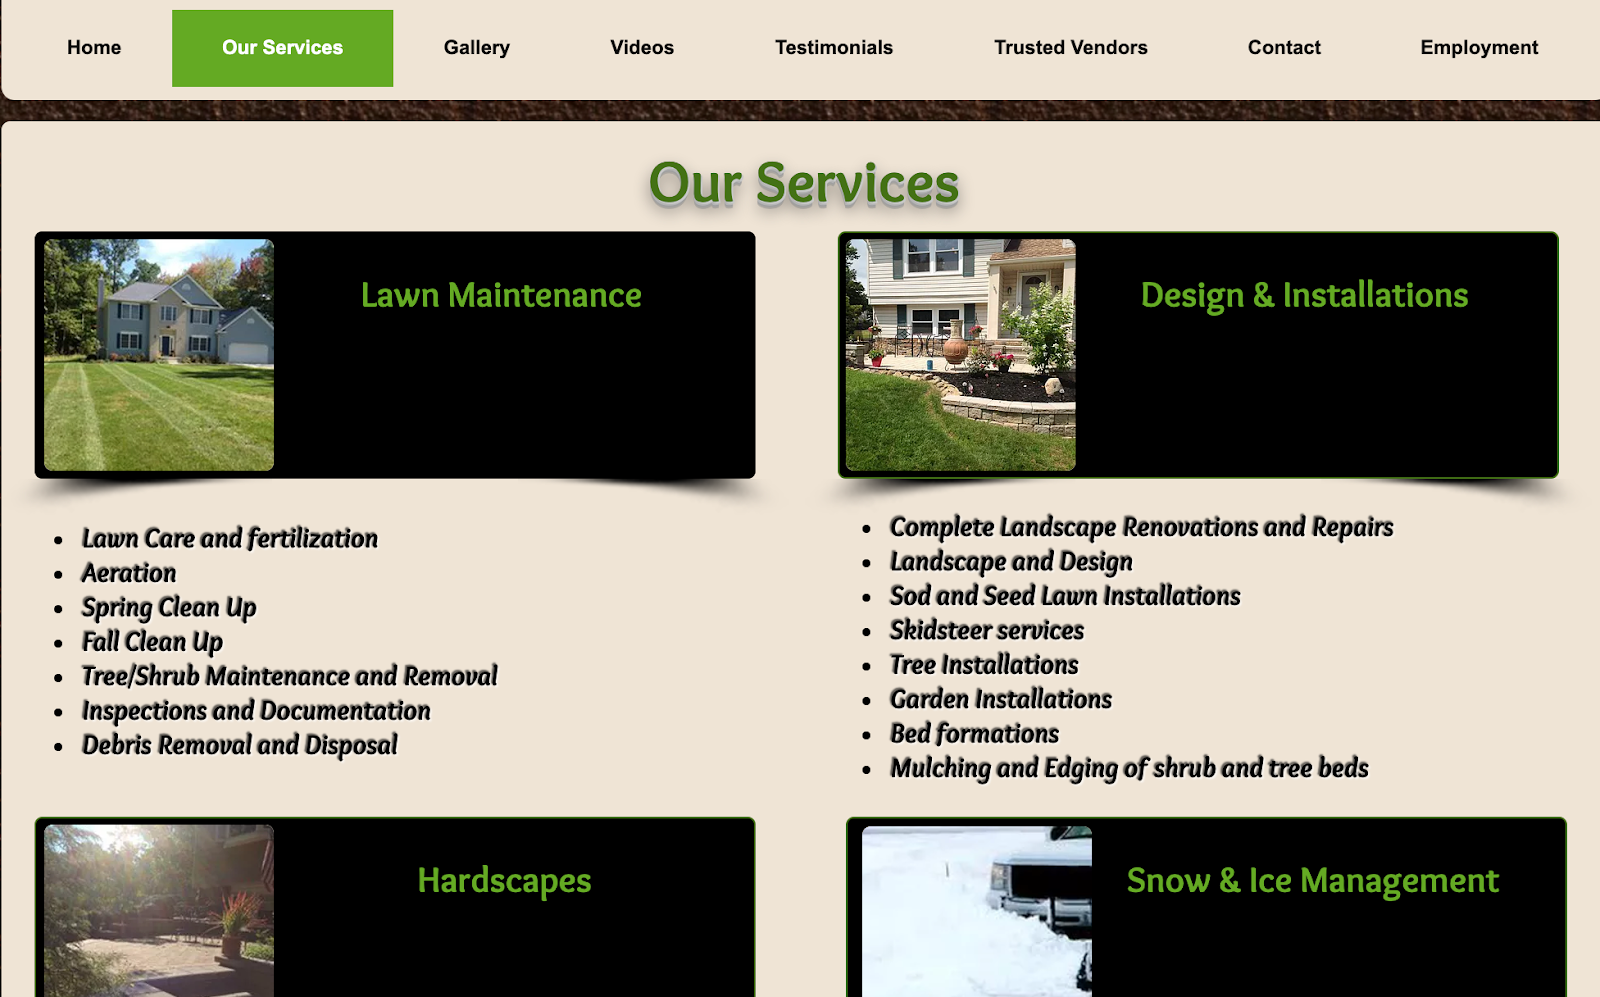 Website architecture screenshot from a lawn care company.